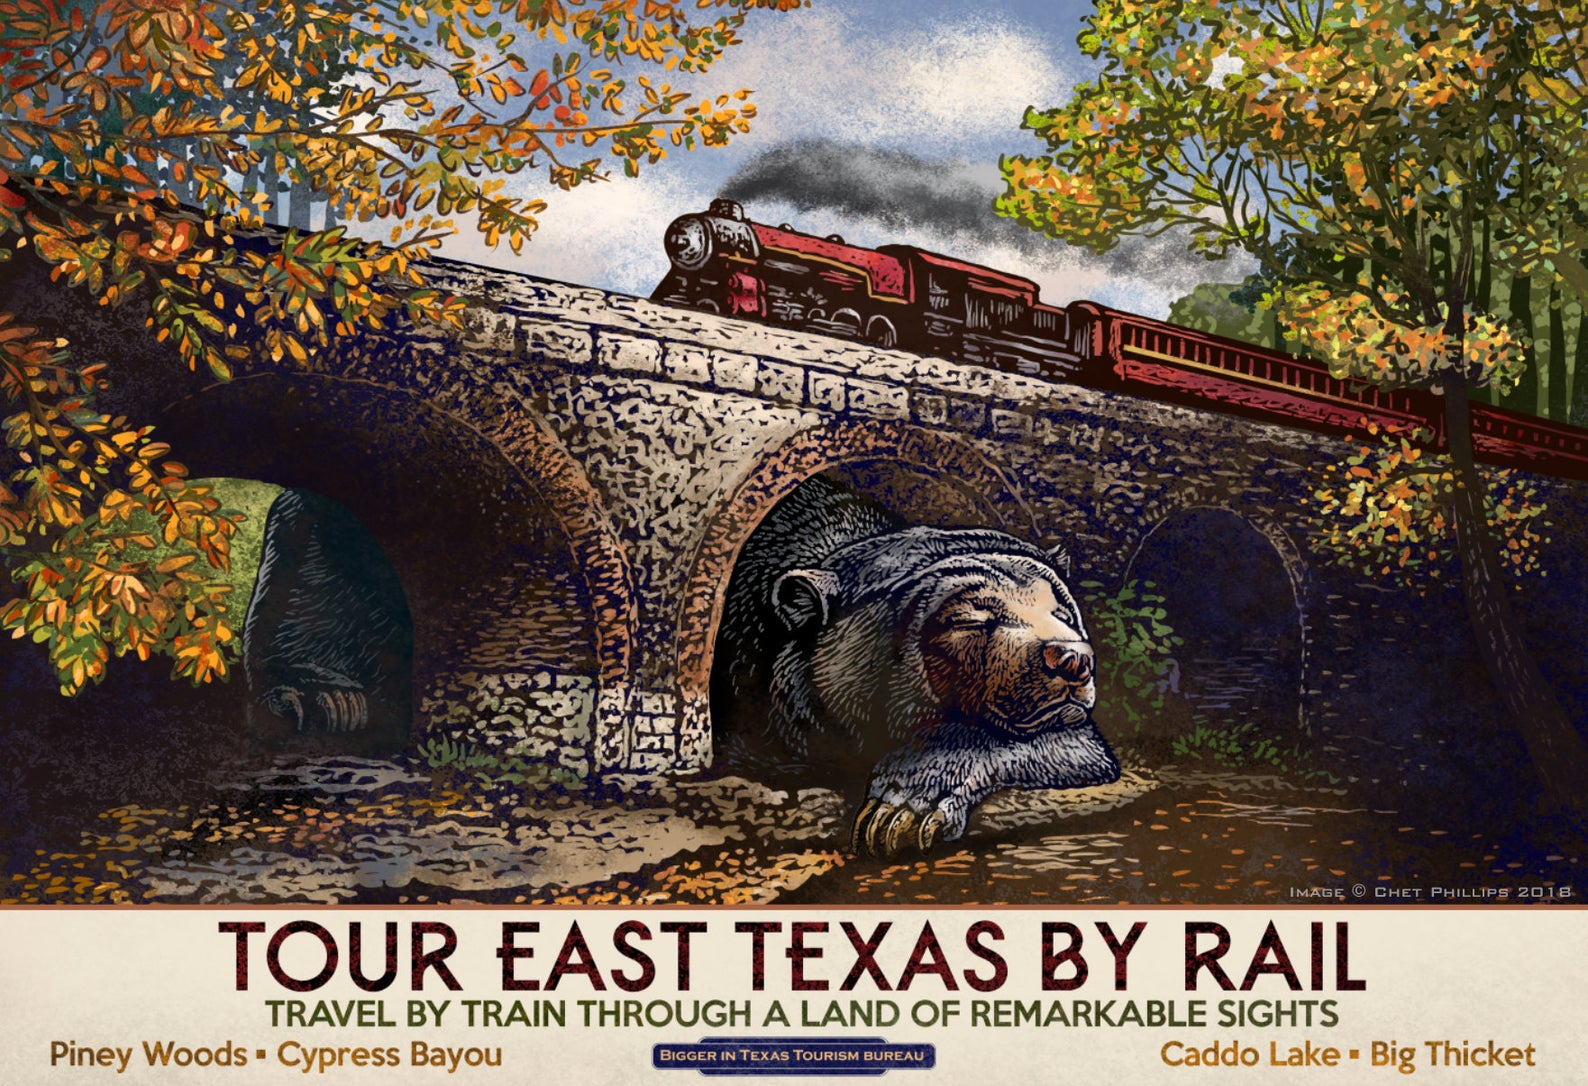 East Texas by Rail- Fantasy Texas Travel Poster